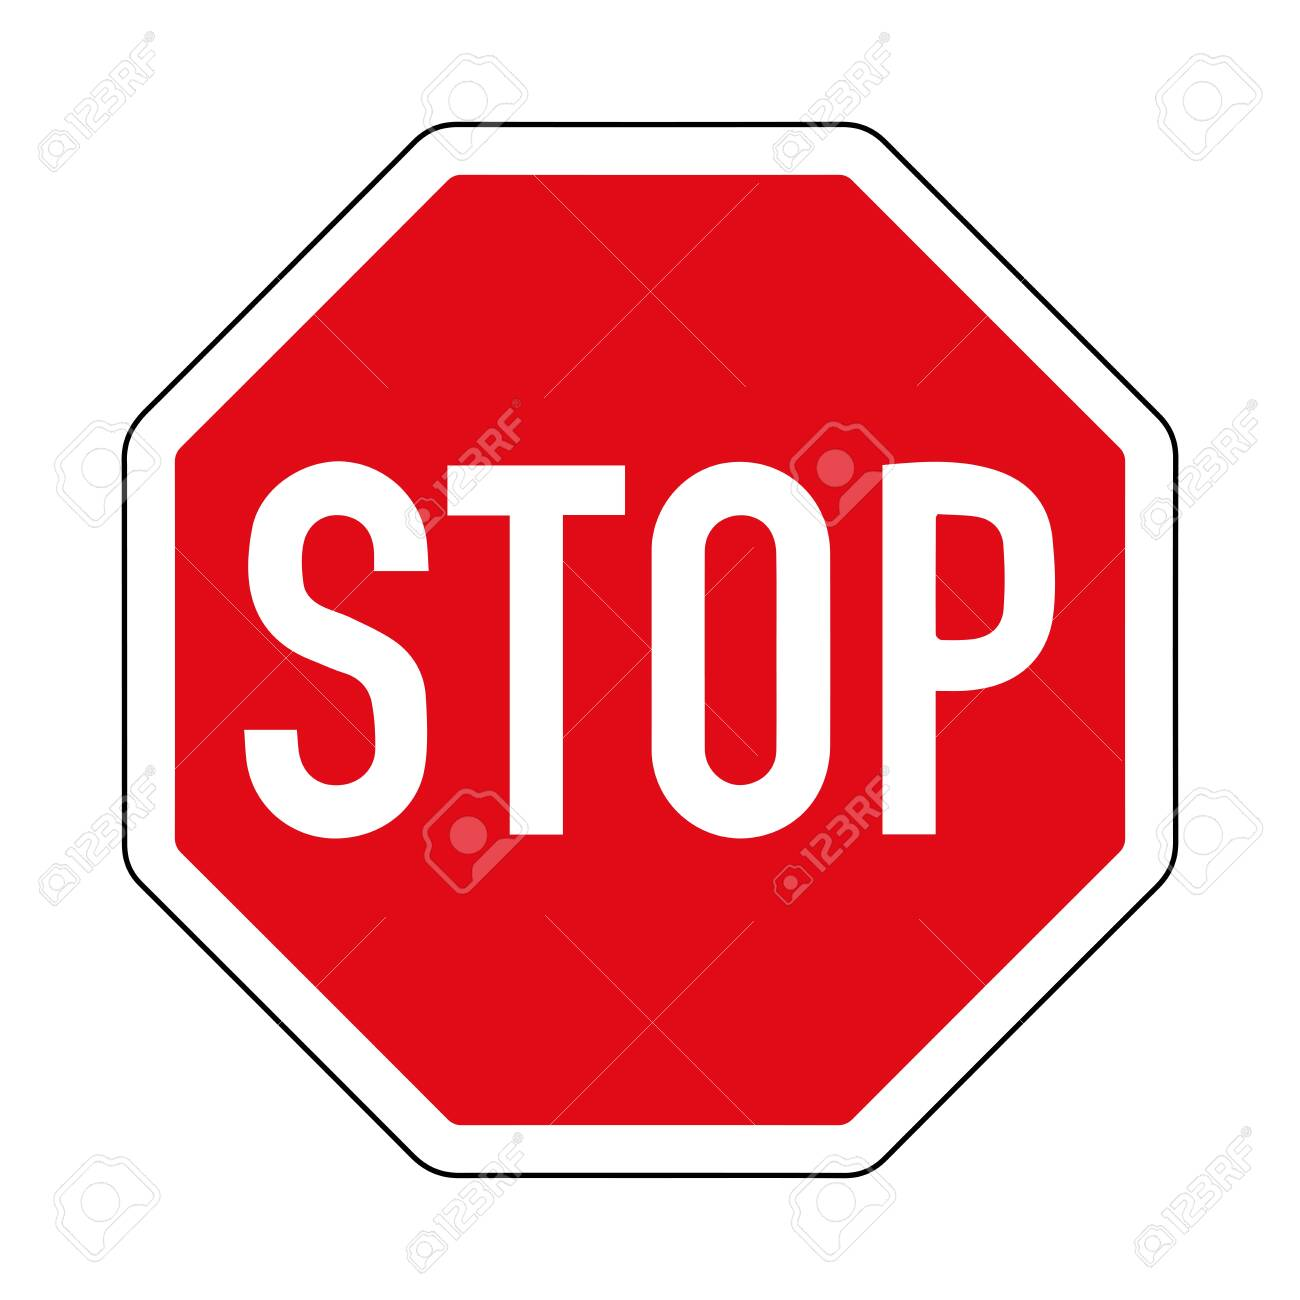 Provide an advantage. Stop. Road sign of Germany. Europe. Vector graphics. - 138859491